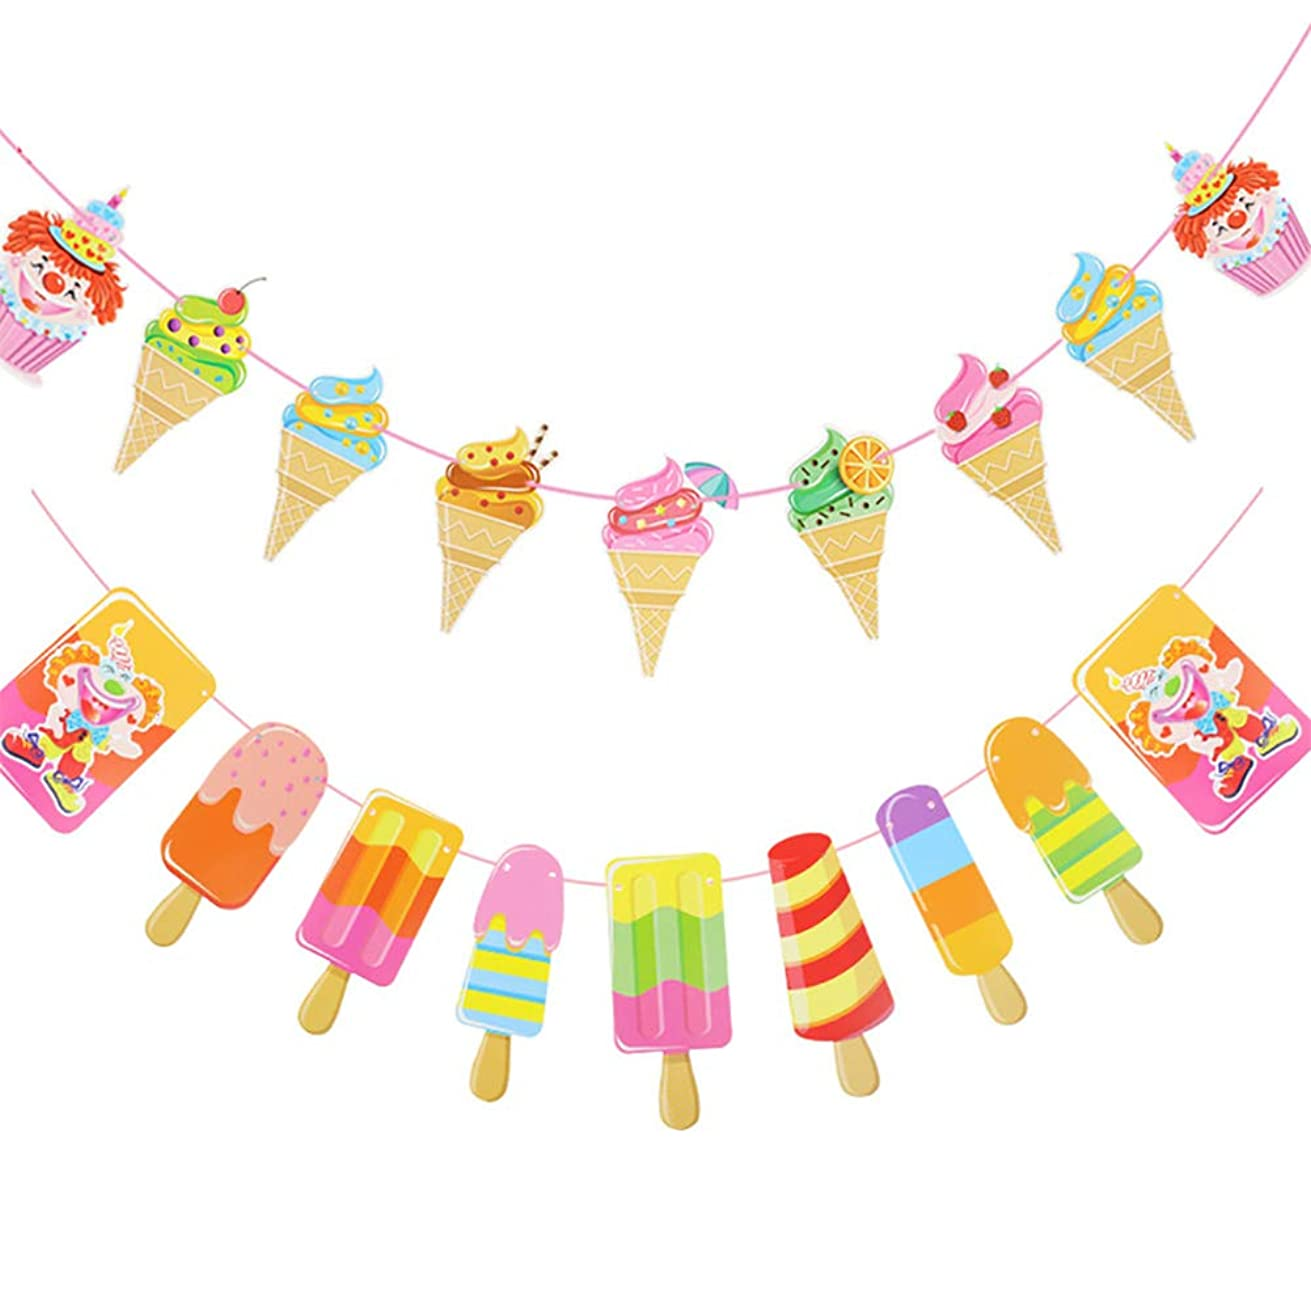 2 Pcs Ice Cream Party Decoration Ribbon Banners Stickers & Confetti Summer Theme Styles for Wedding Birthday